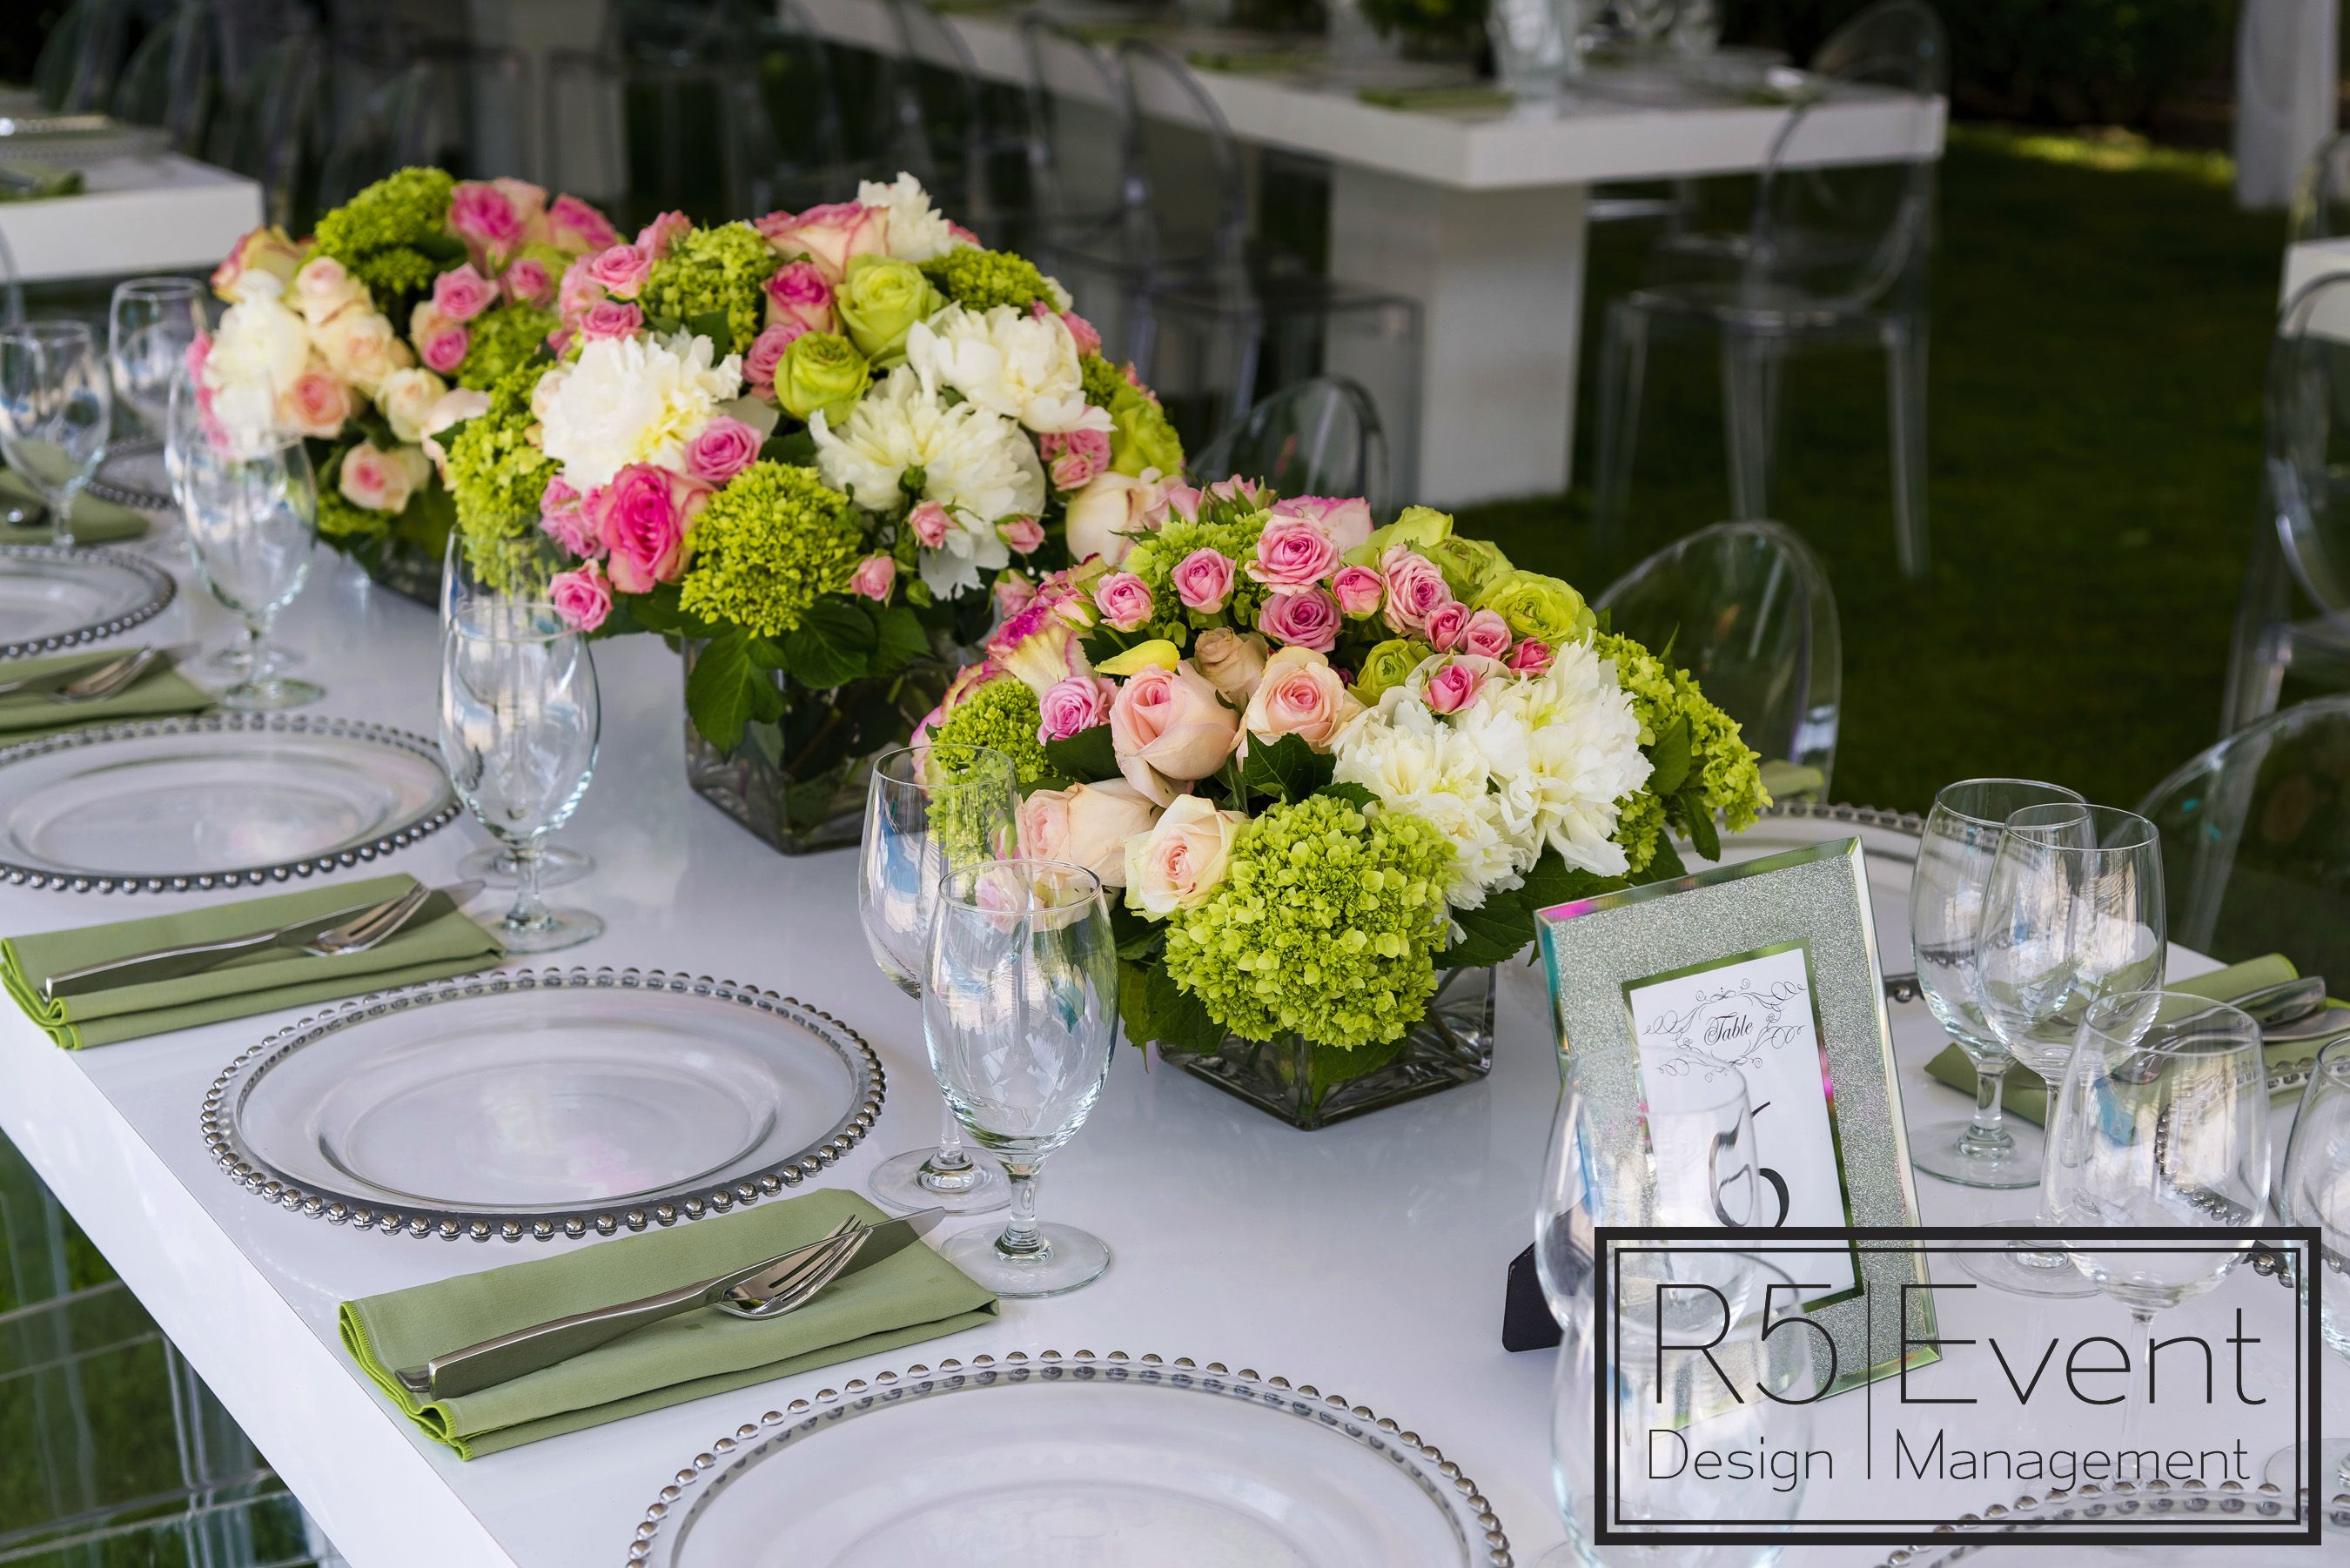 Bridal Shower Flower Arrangements With Green, White & Pink Flowers